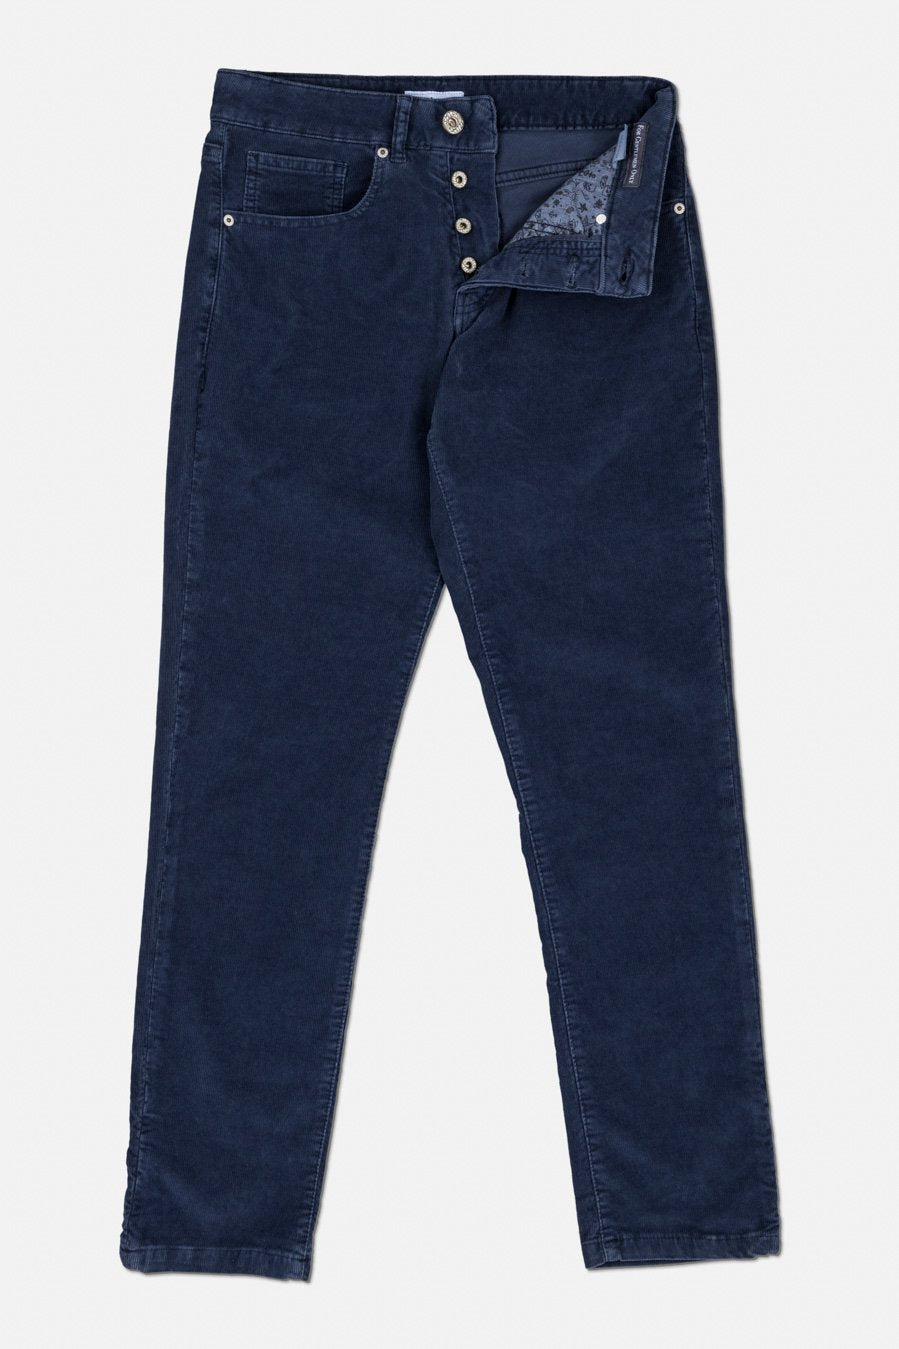 5 Pocket Cord Navy